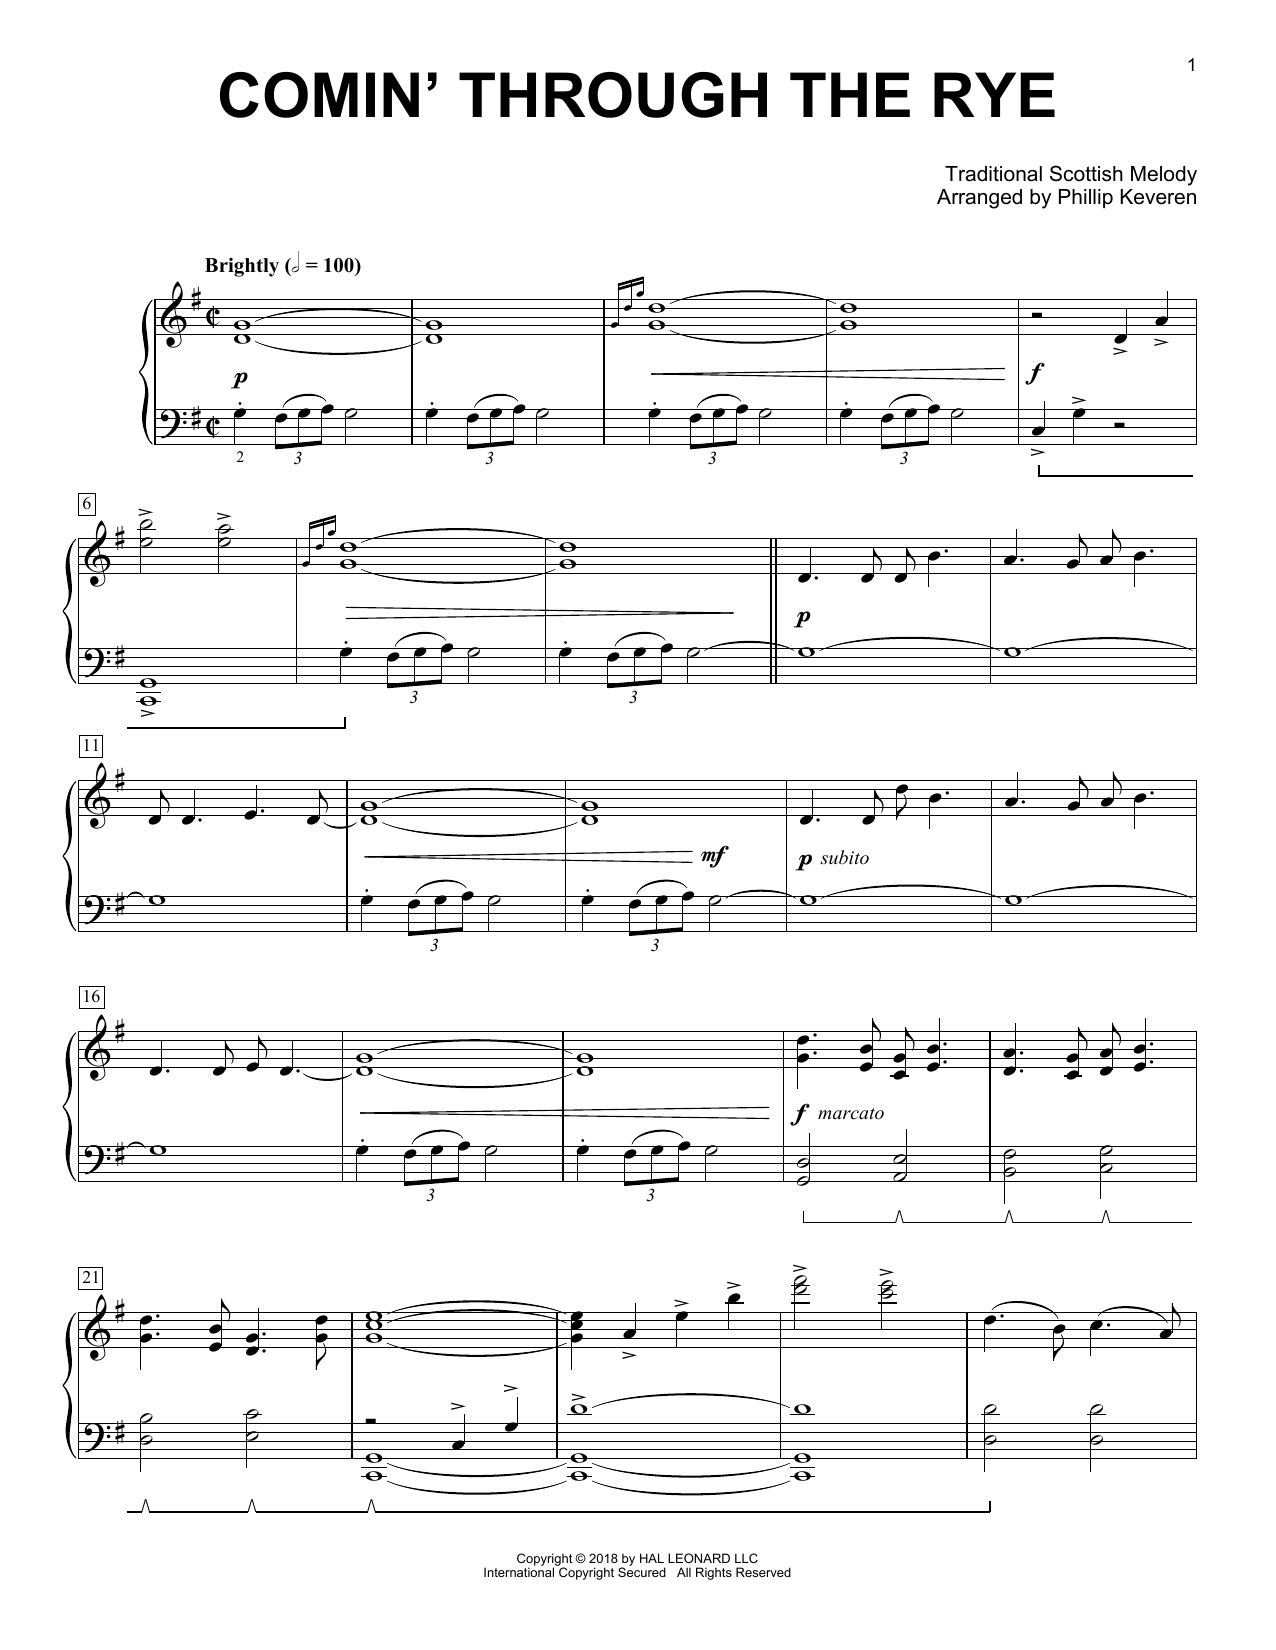 Download Traditional Scottish Melody 'Comin' Through The Rye (arr. Phillip Keveren)' Digital Sheet Music Notes & Chords and start playing in minutes